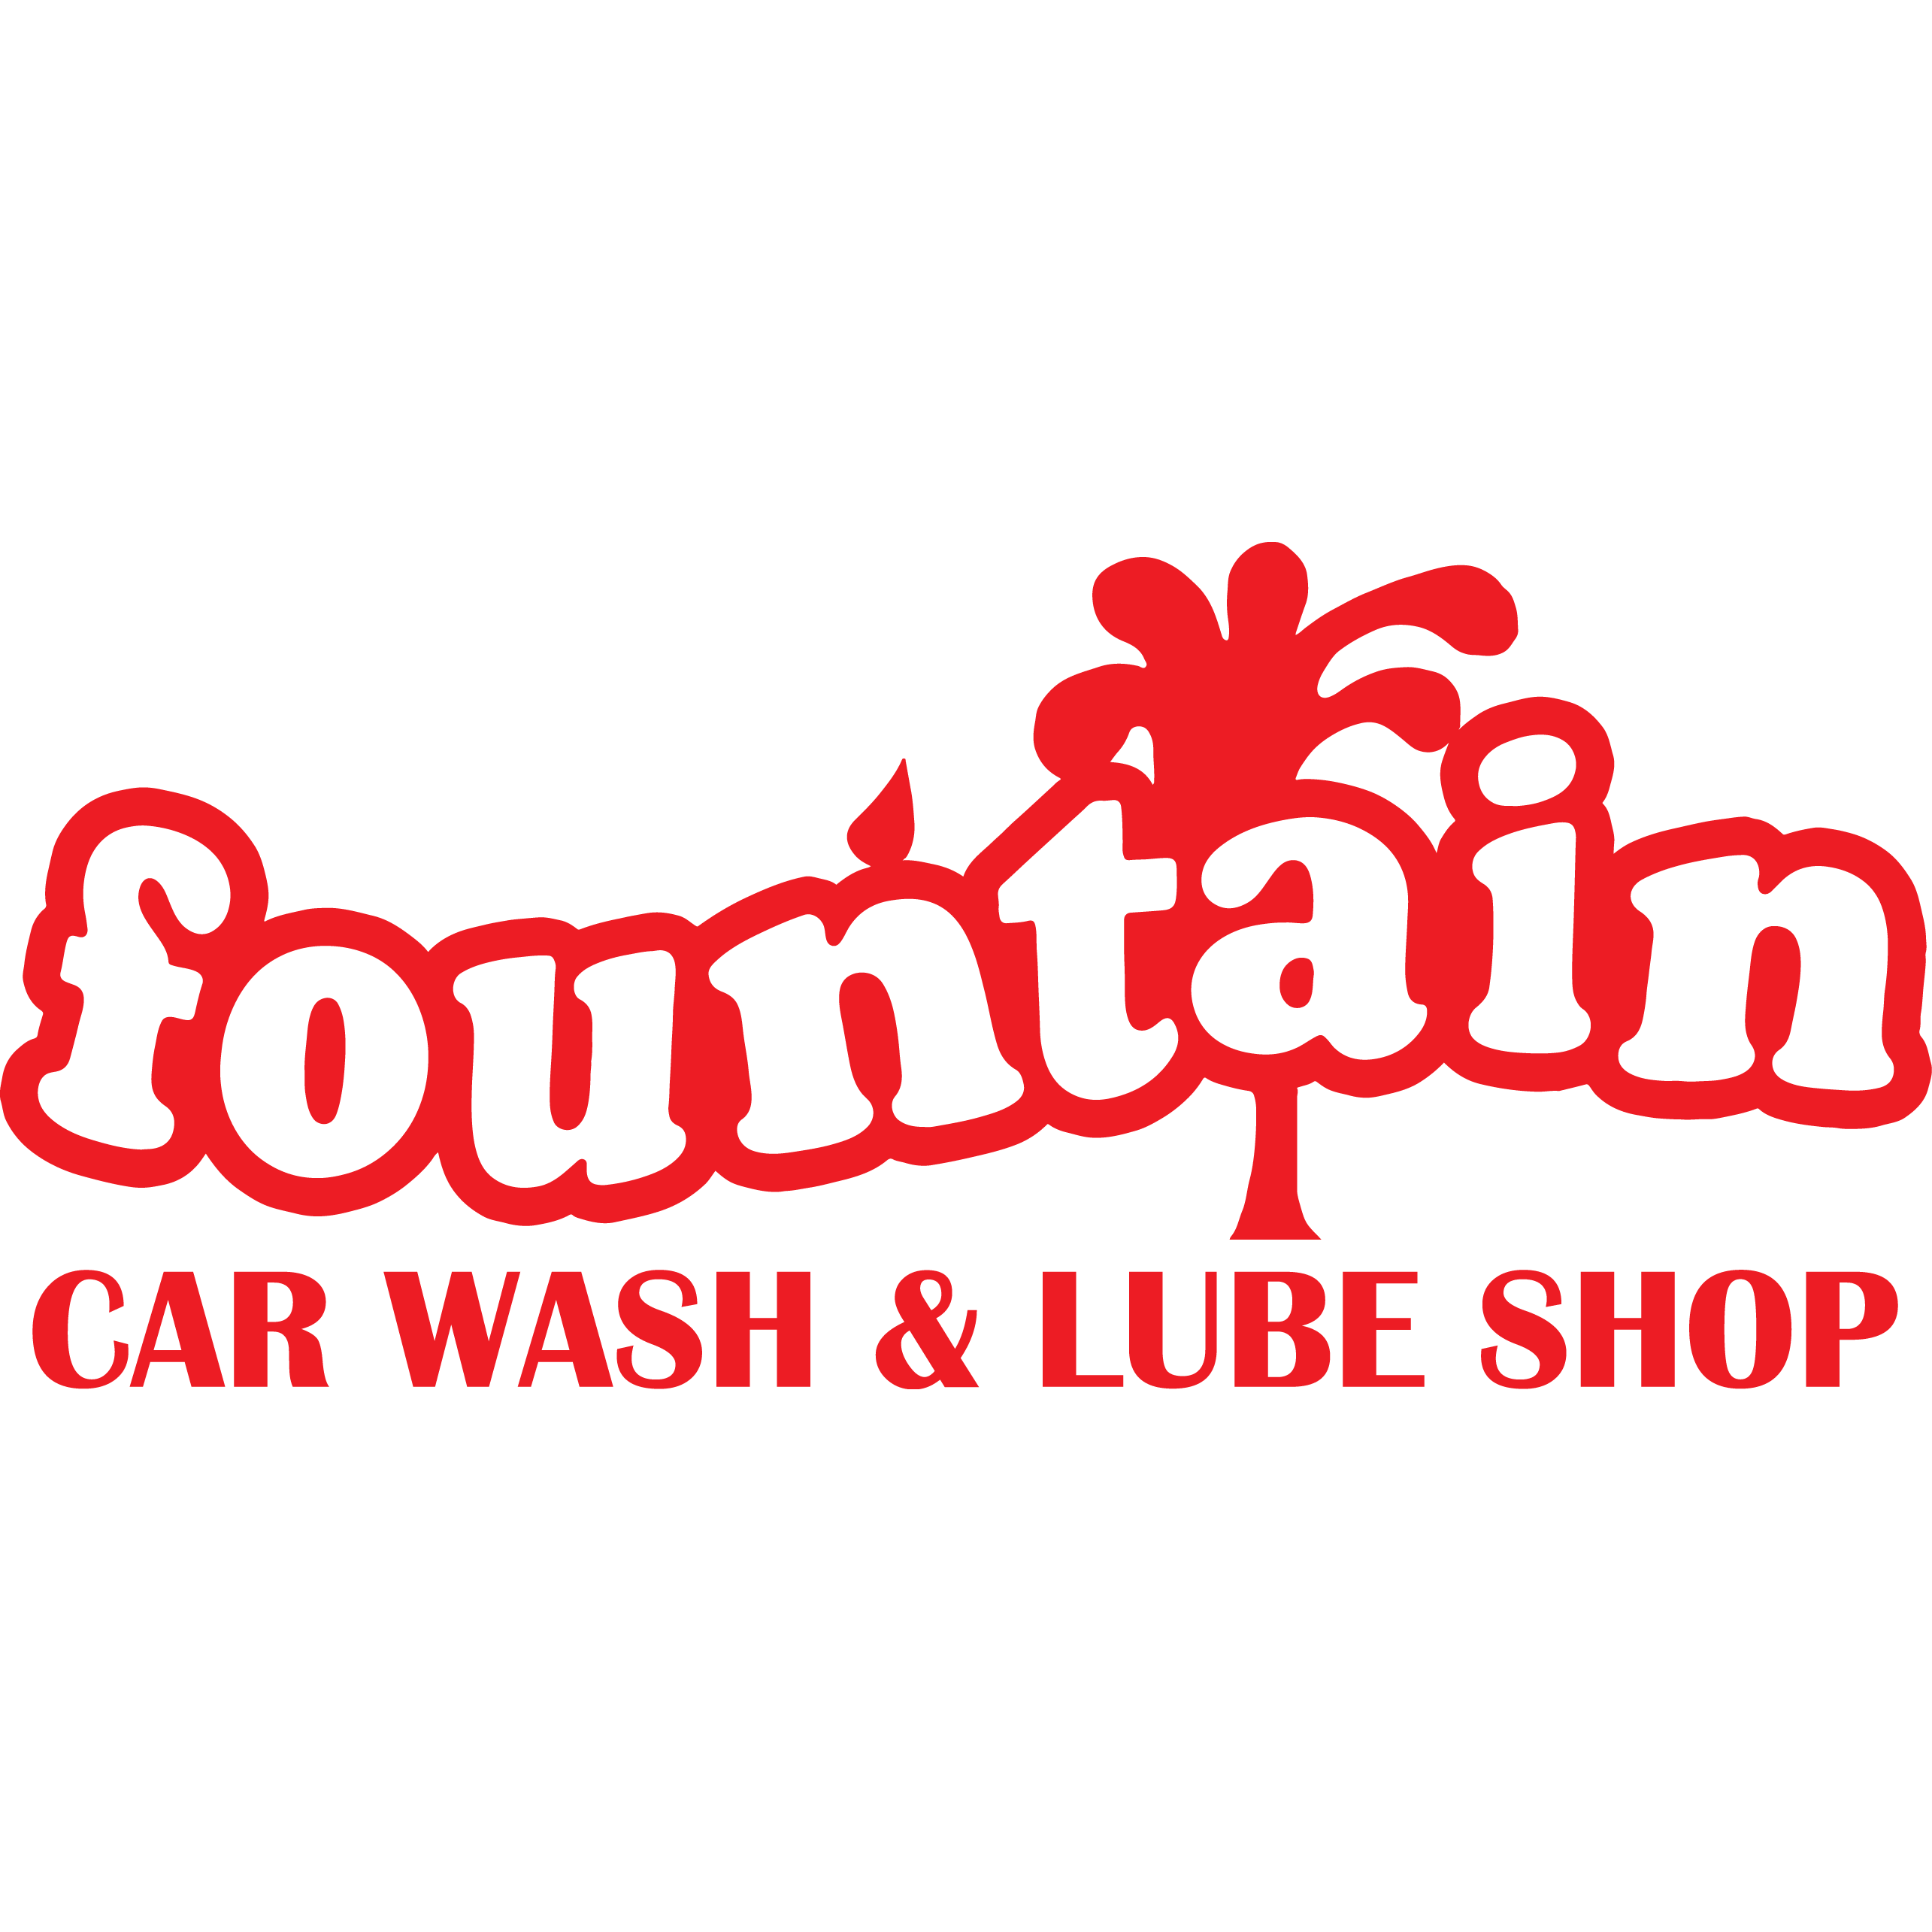 The Fountain Car Wash and Lube Shop